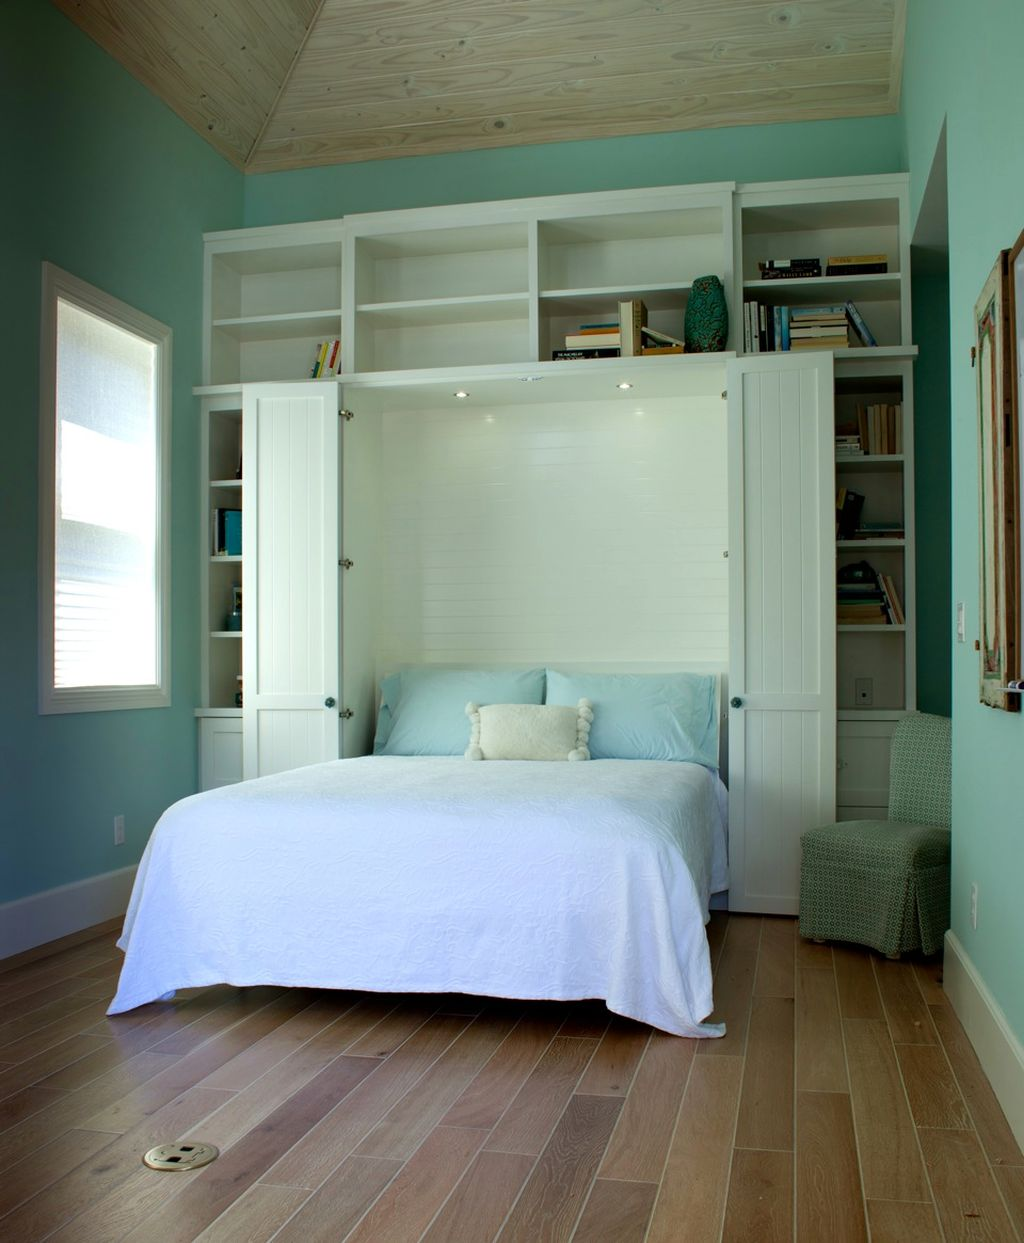 Murphy Bed Design Ideas cool bedroom design ideas with brown wooden murphy bed frame combine with Murphy Bed Design Ideas For Small Rooms In Blue